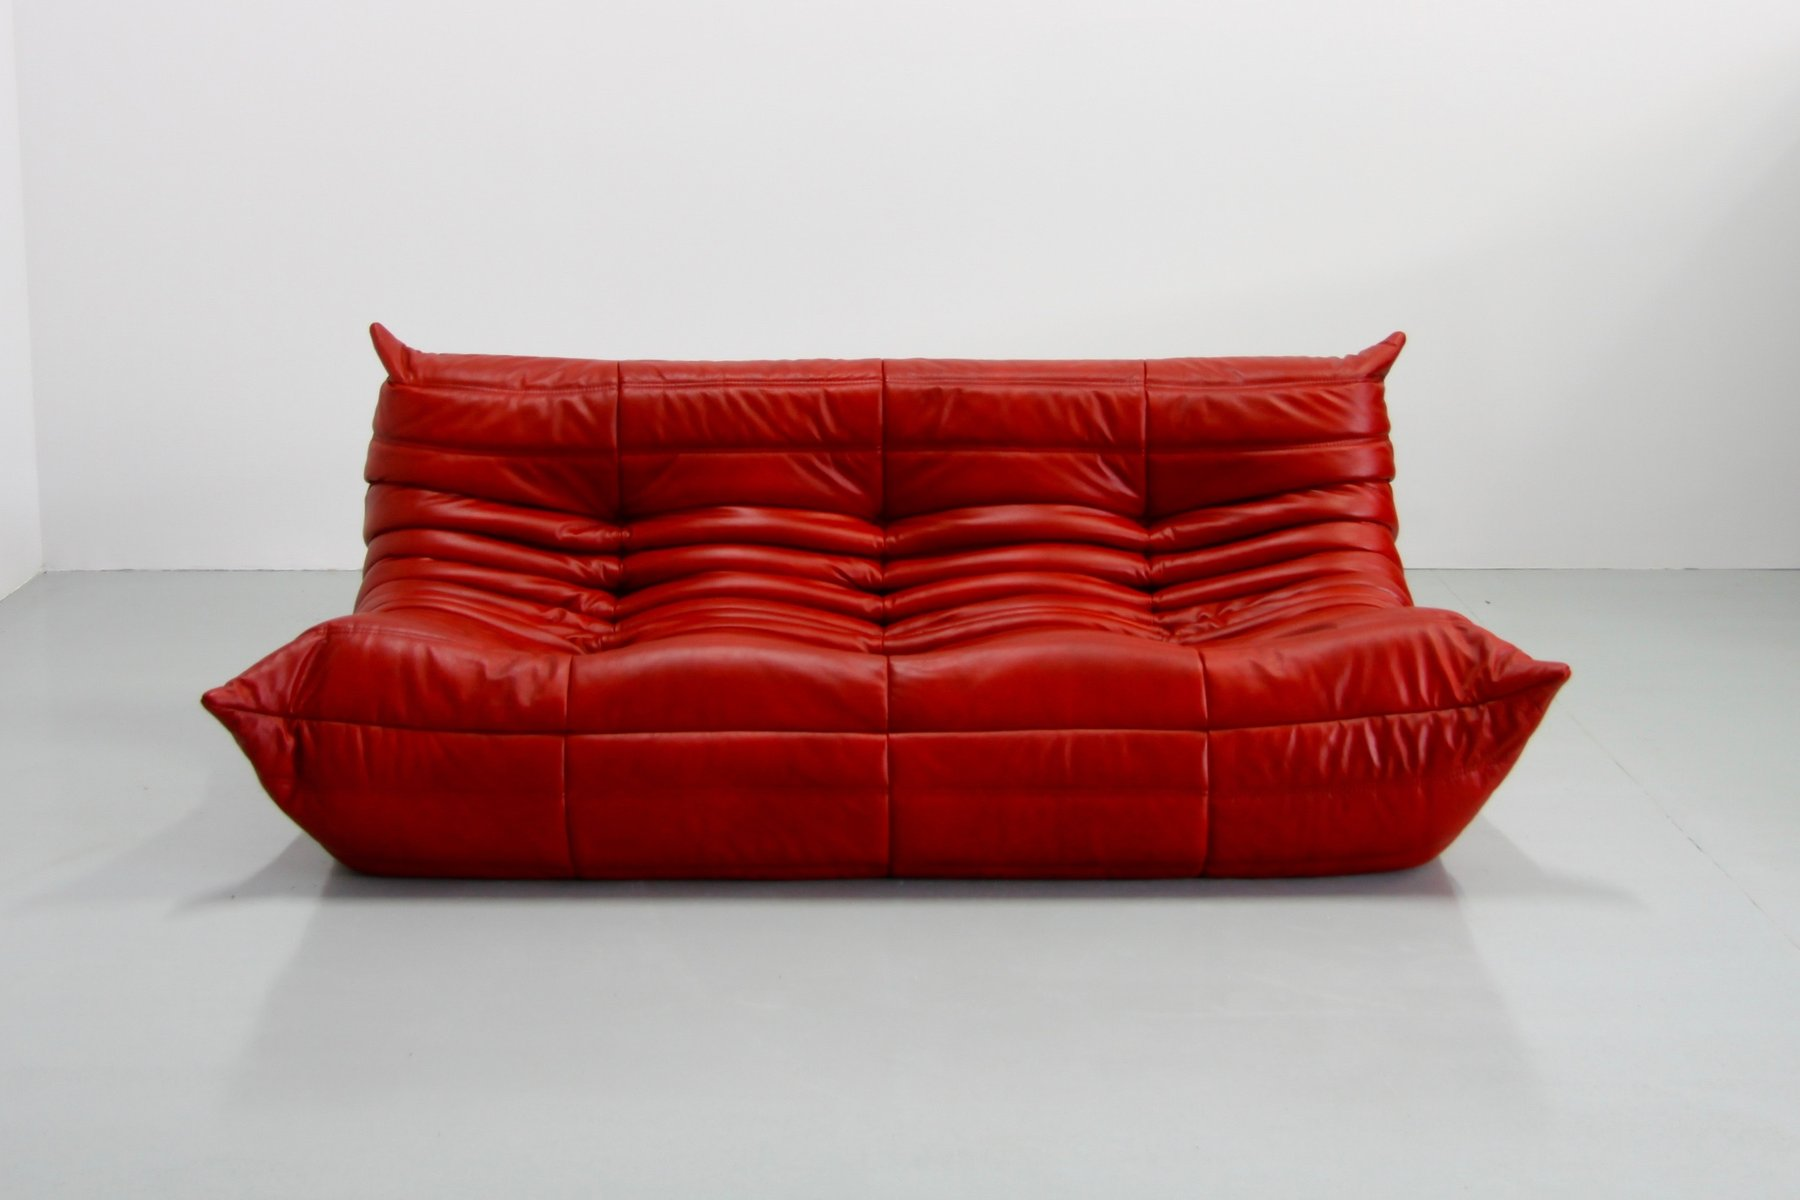 Vintage red leather togo sofa by michel ducaroy for ligne for Ligne roset ulm